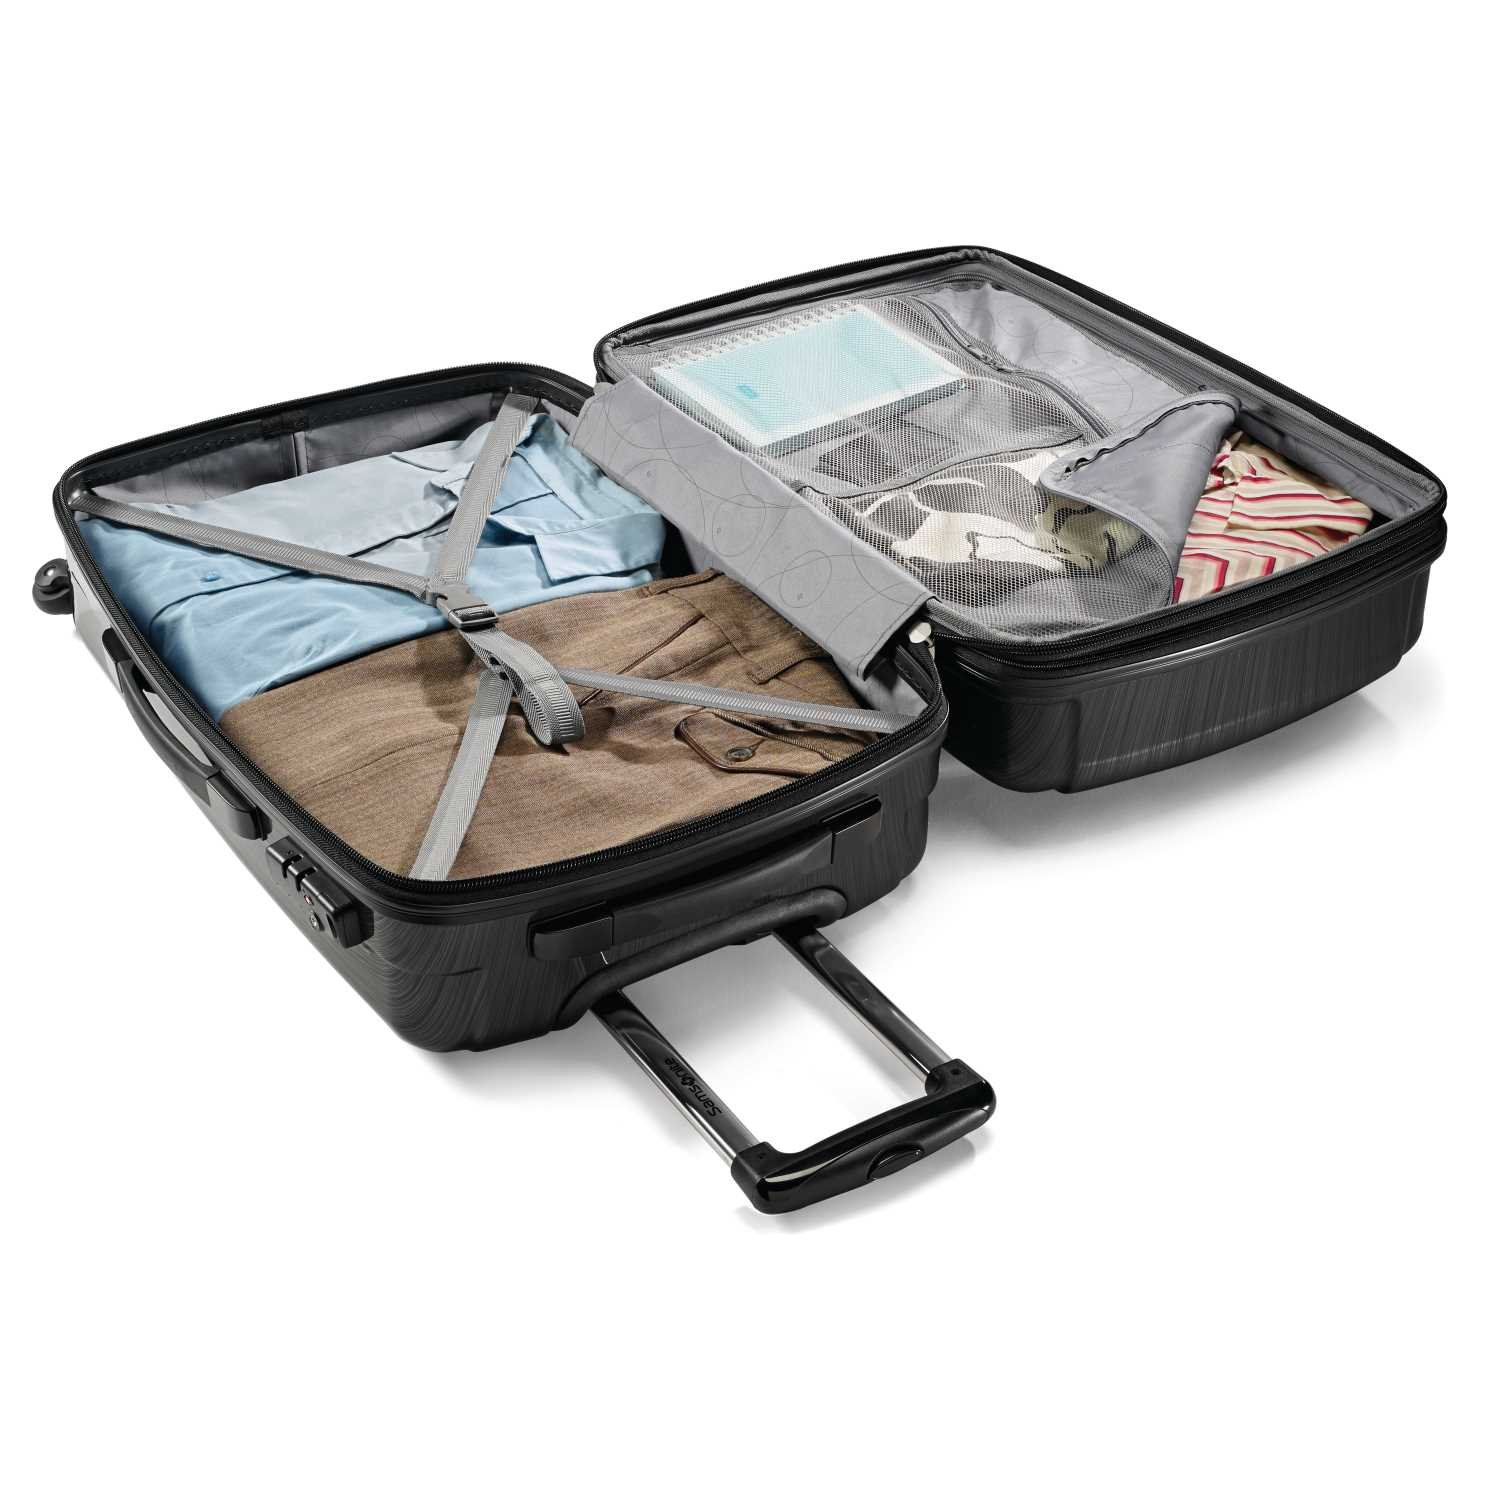 Samsonite Winfield 2 Hardside 24'' Luggage, Brushed Anthracite by Samsonite (Image #7)